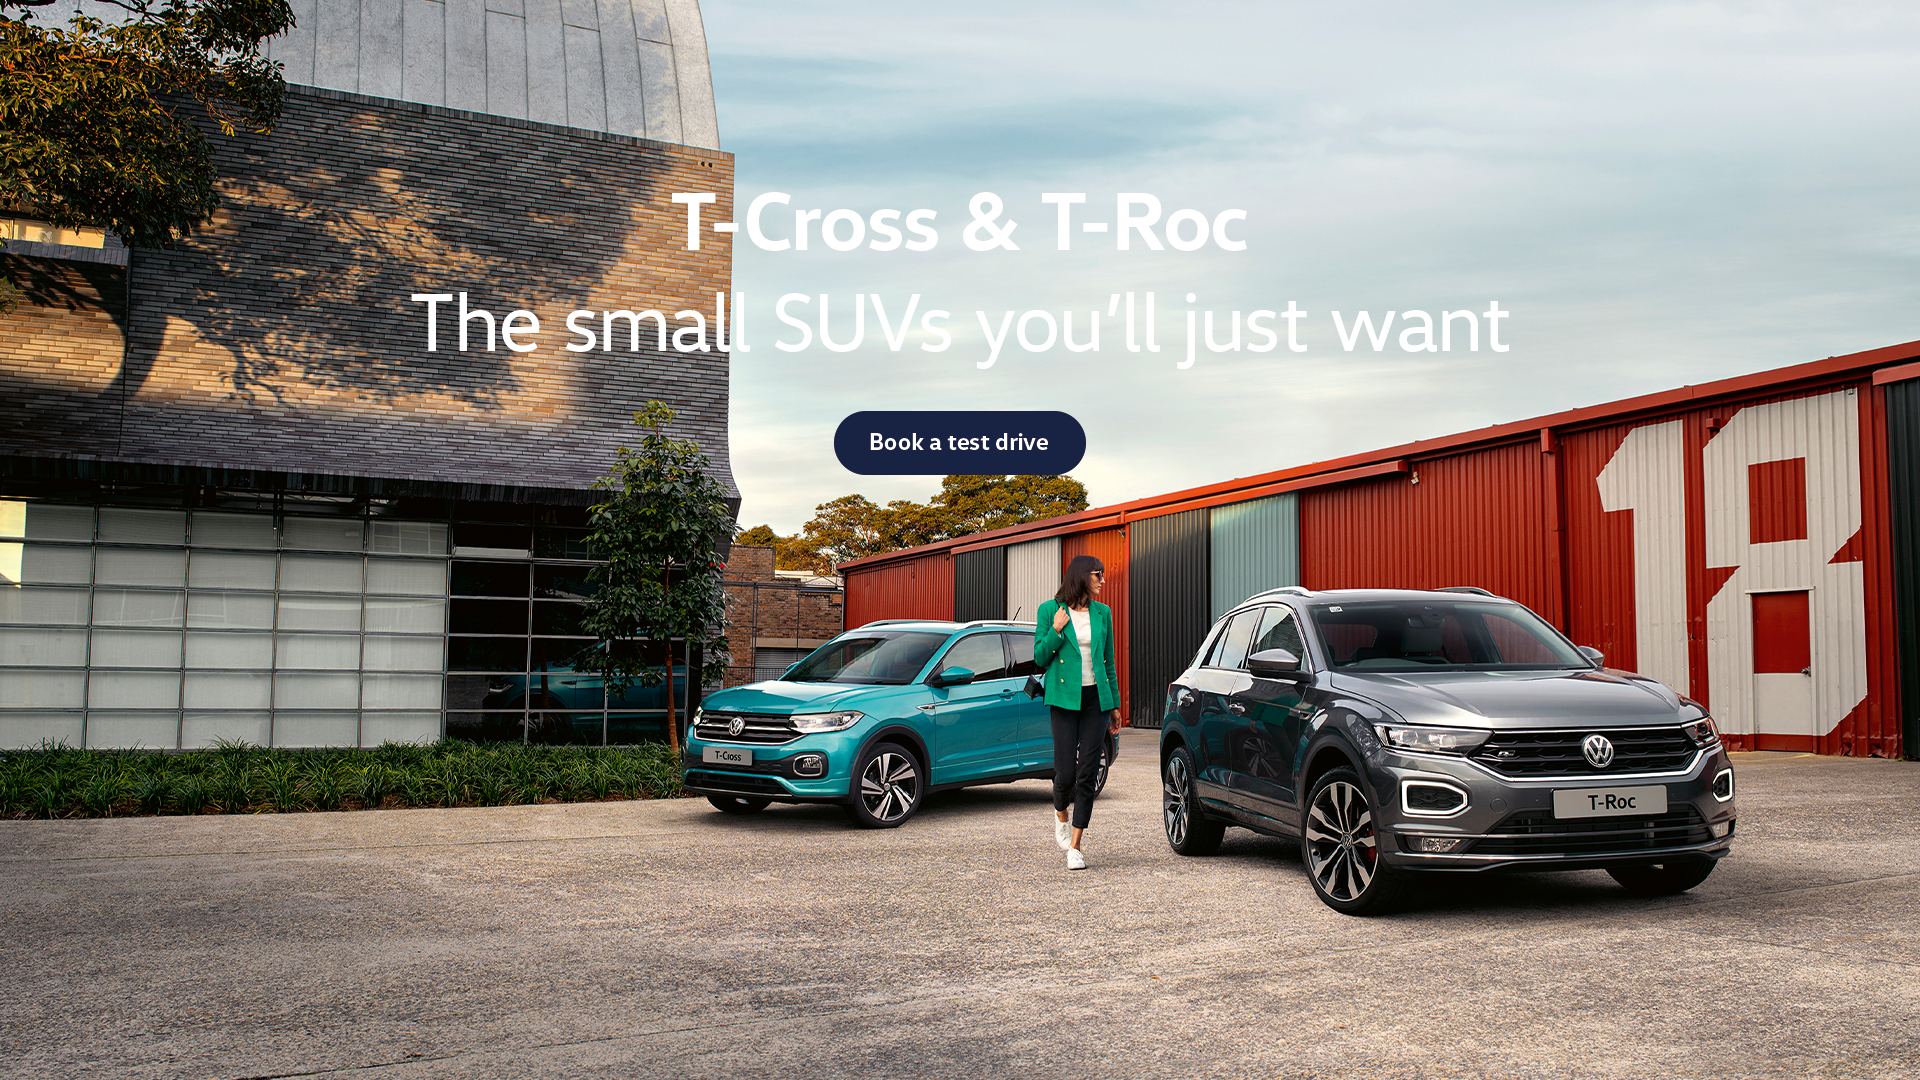 Volkswagen Small SUV range. Test drive today at Northern Rivers Volkswagen